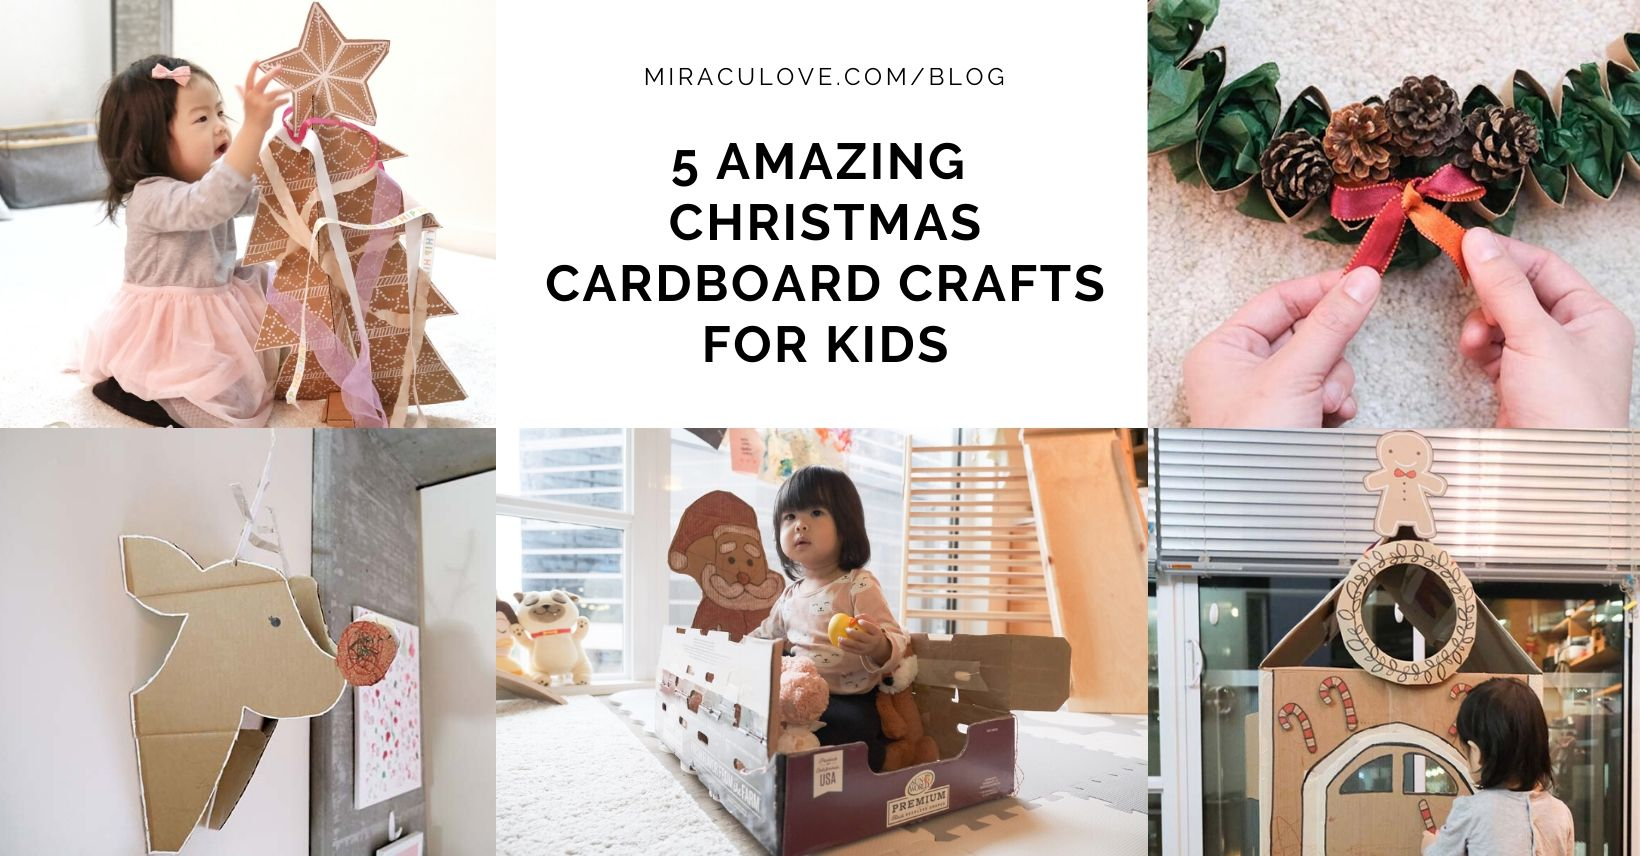 5 Amazing DIY Christmas Cardboard Crafts for Kids